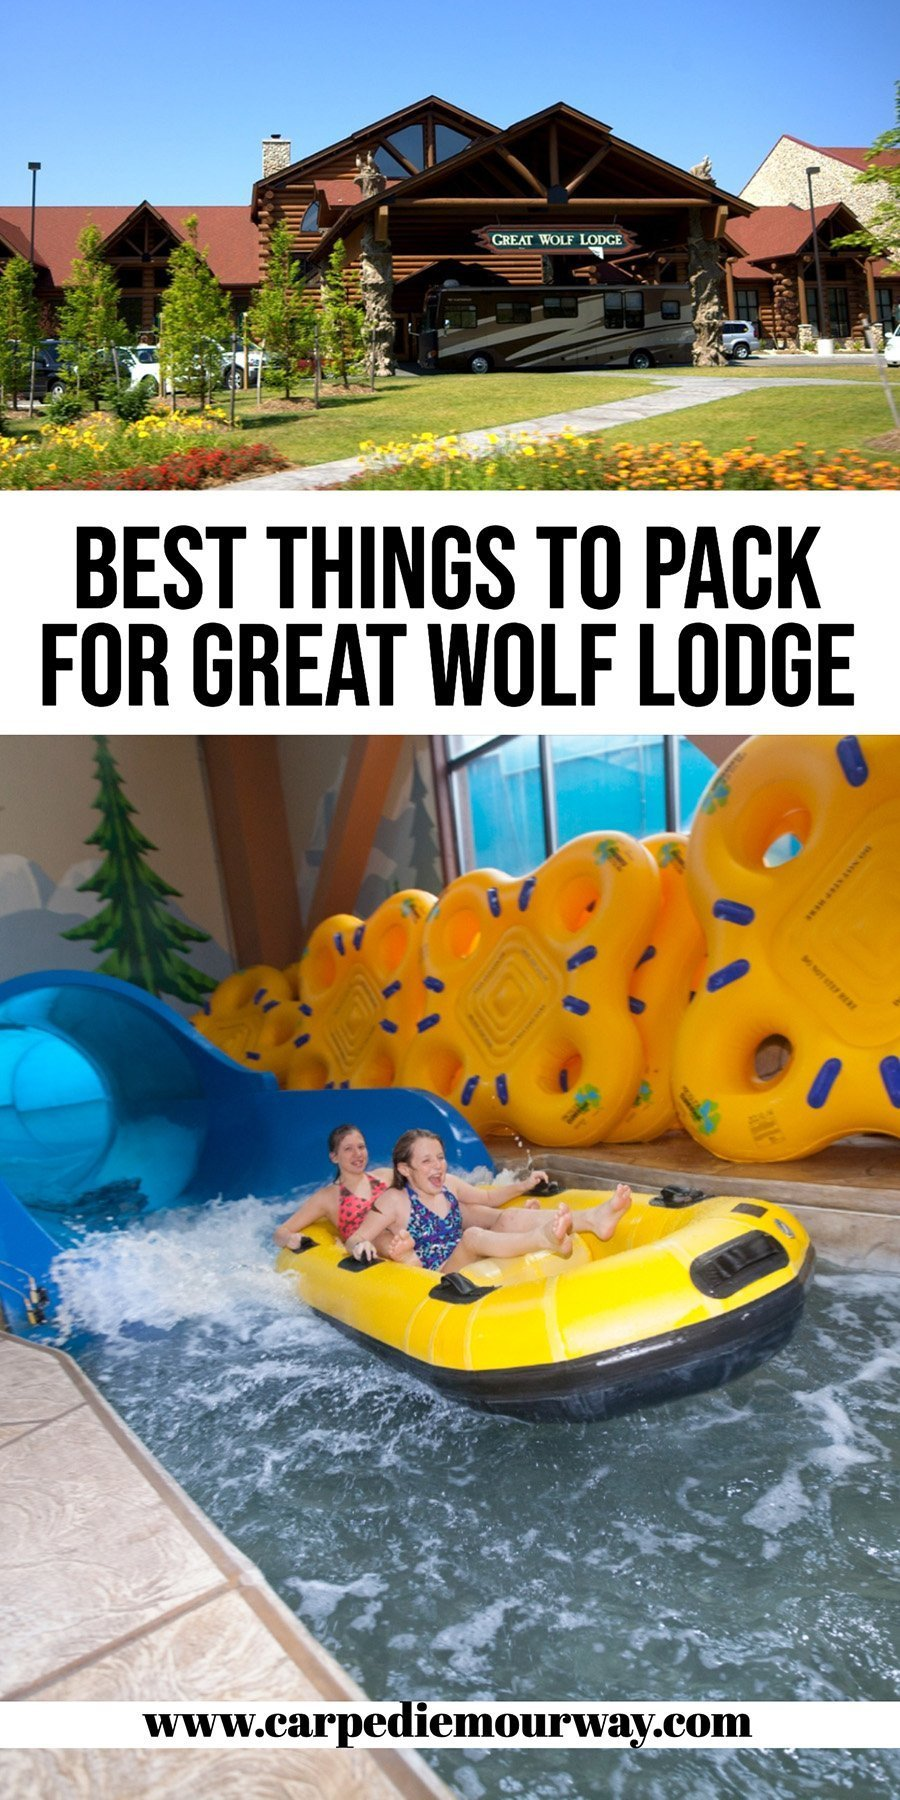 What to Bring to Great Wolf Lodge